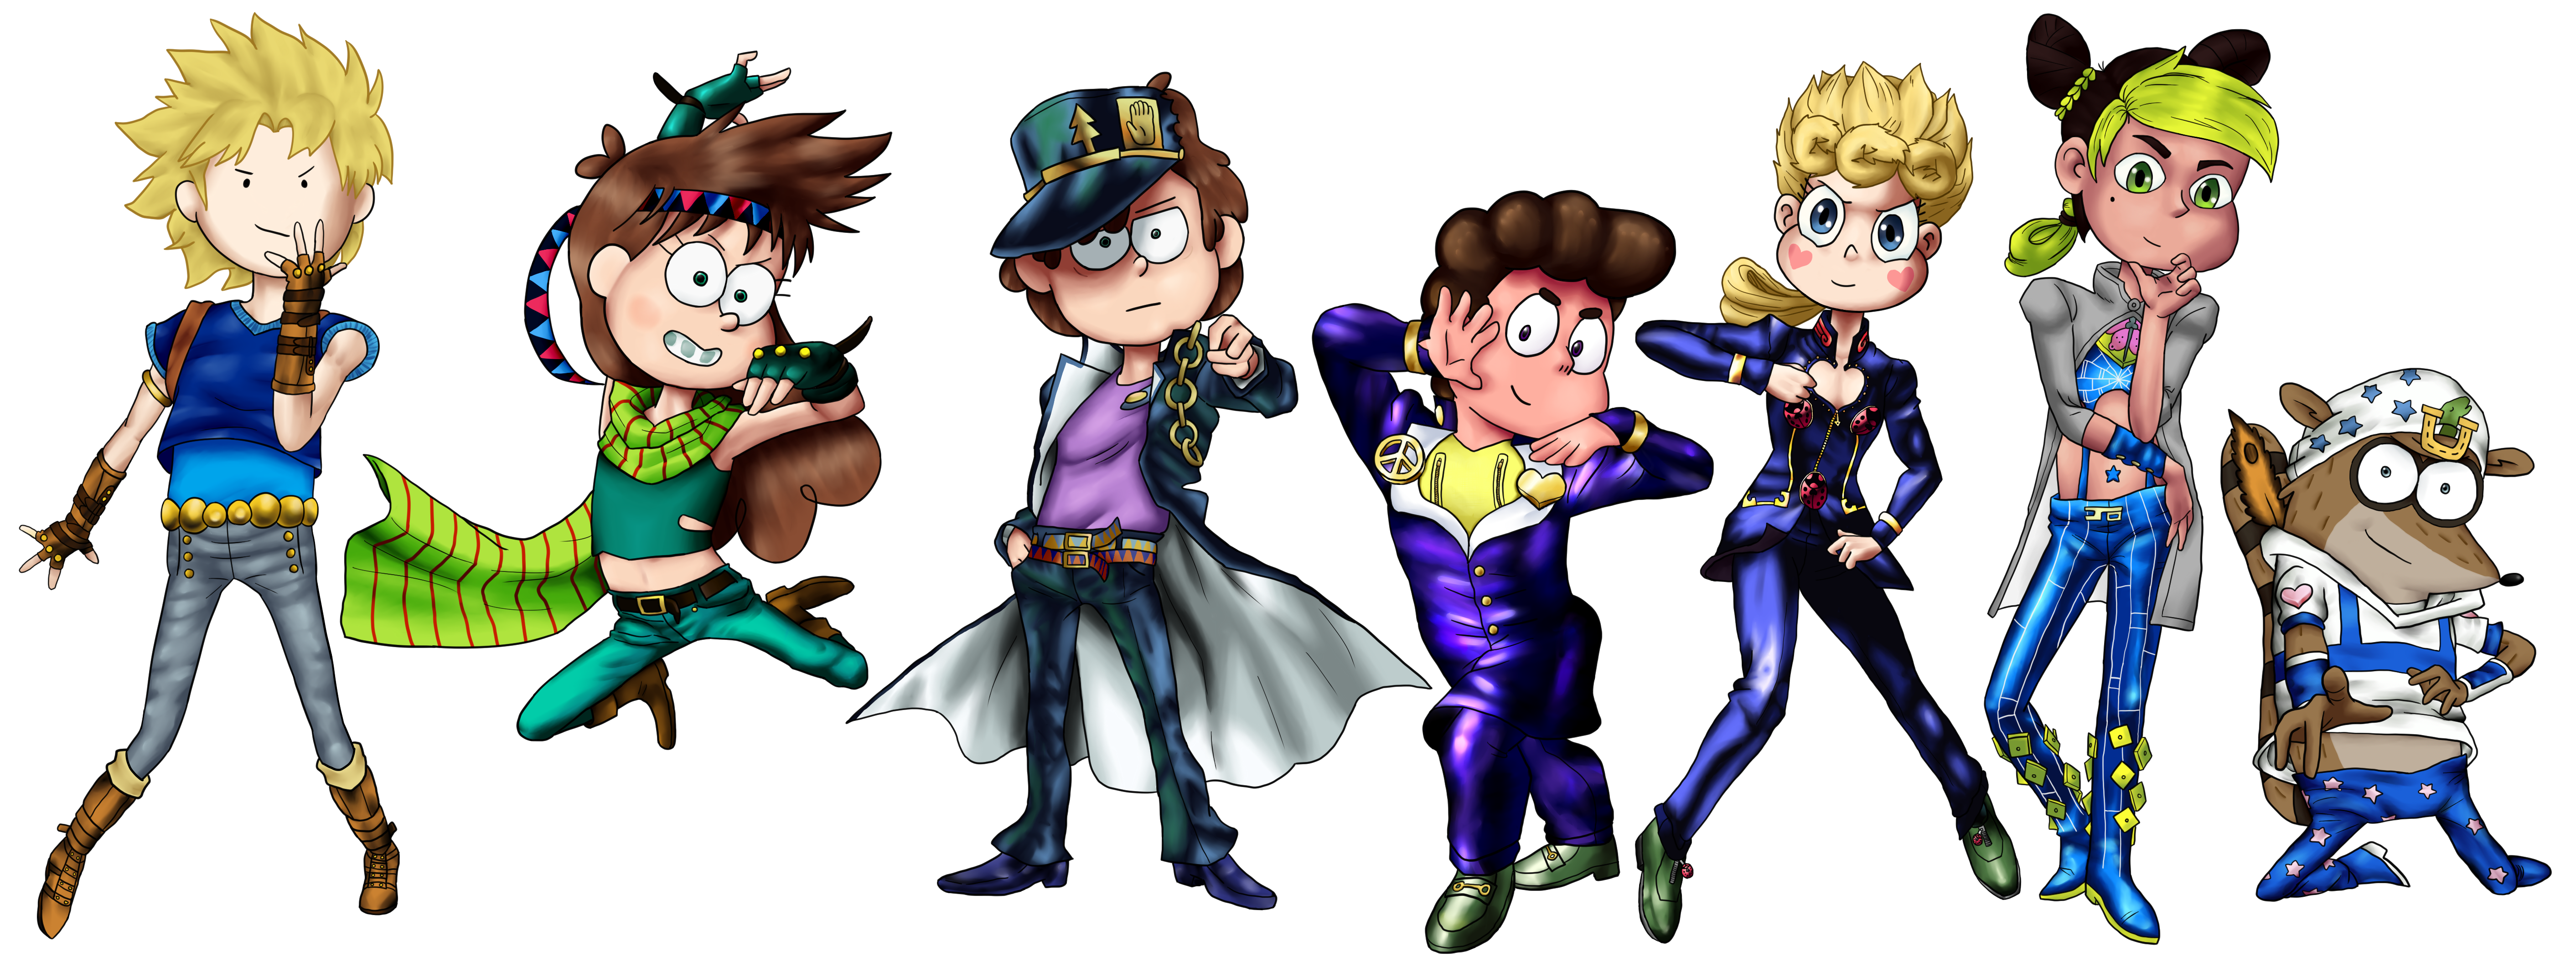 Crossover Group 2 Lineup by SsjGokux20 on DeviantArt